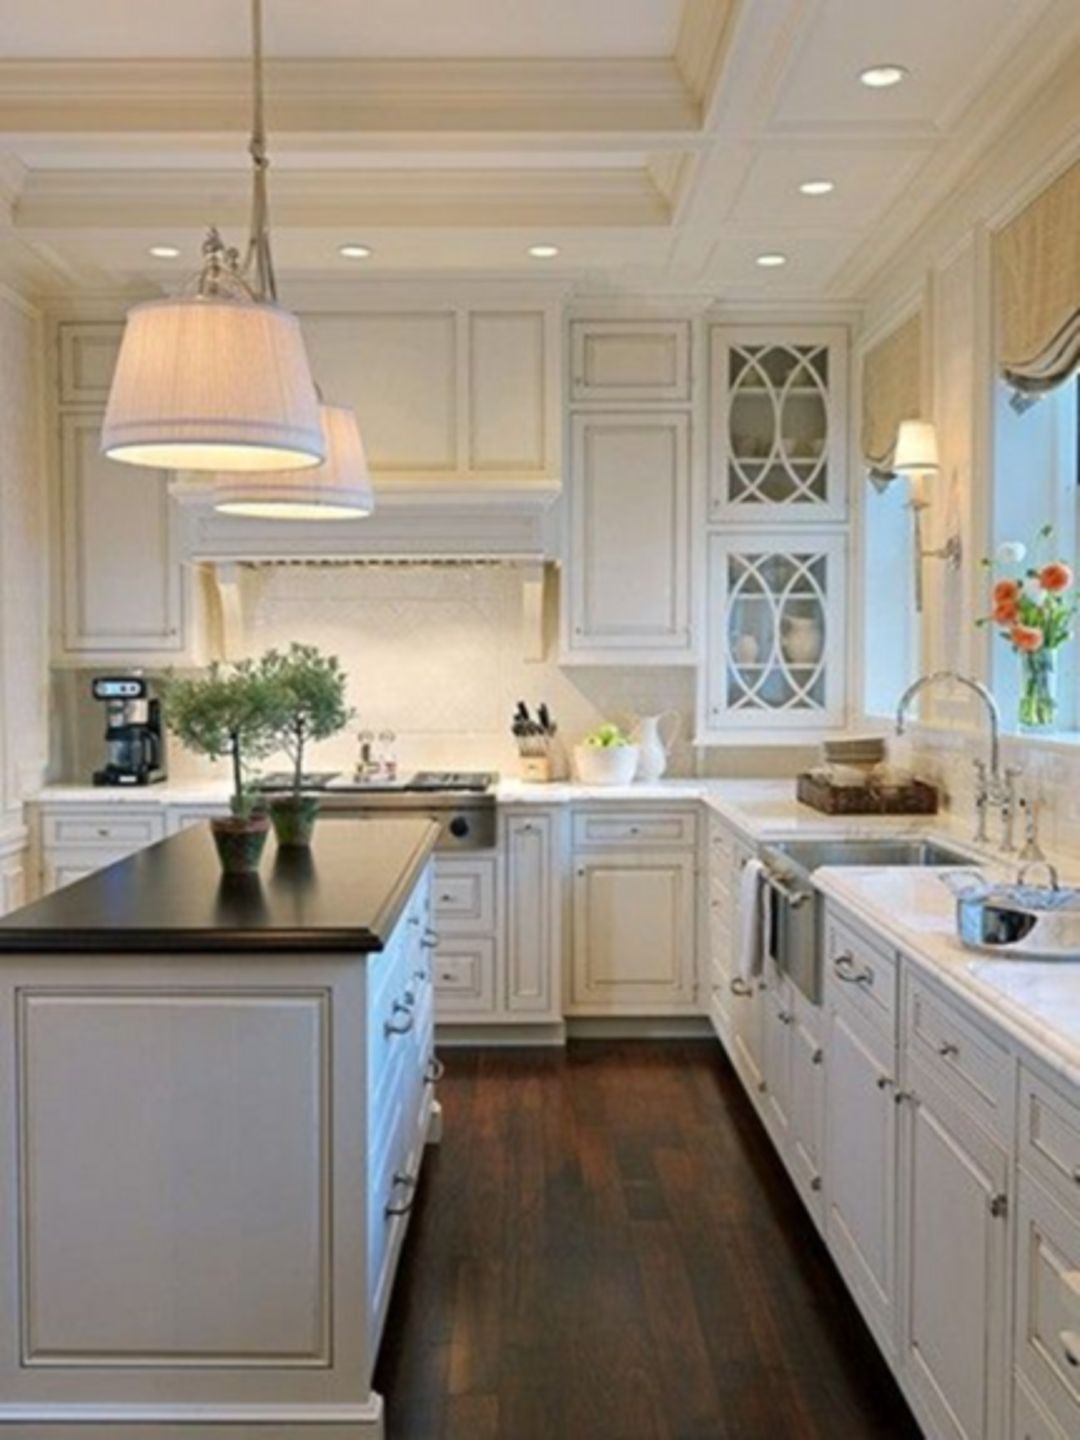 20 Awesome Classic American Kitchen Style Ideas For Your Home Kitchen Design Home Kitchens Kitchen Remodel